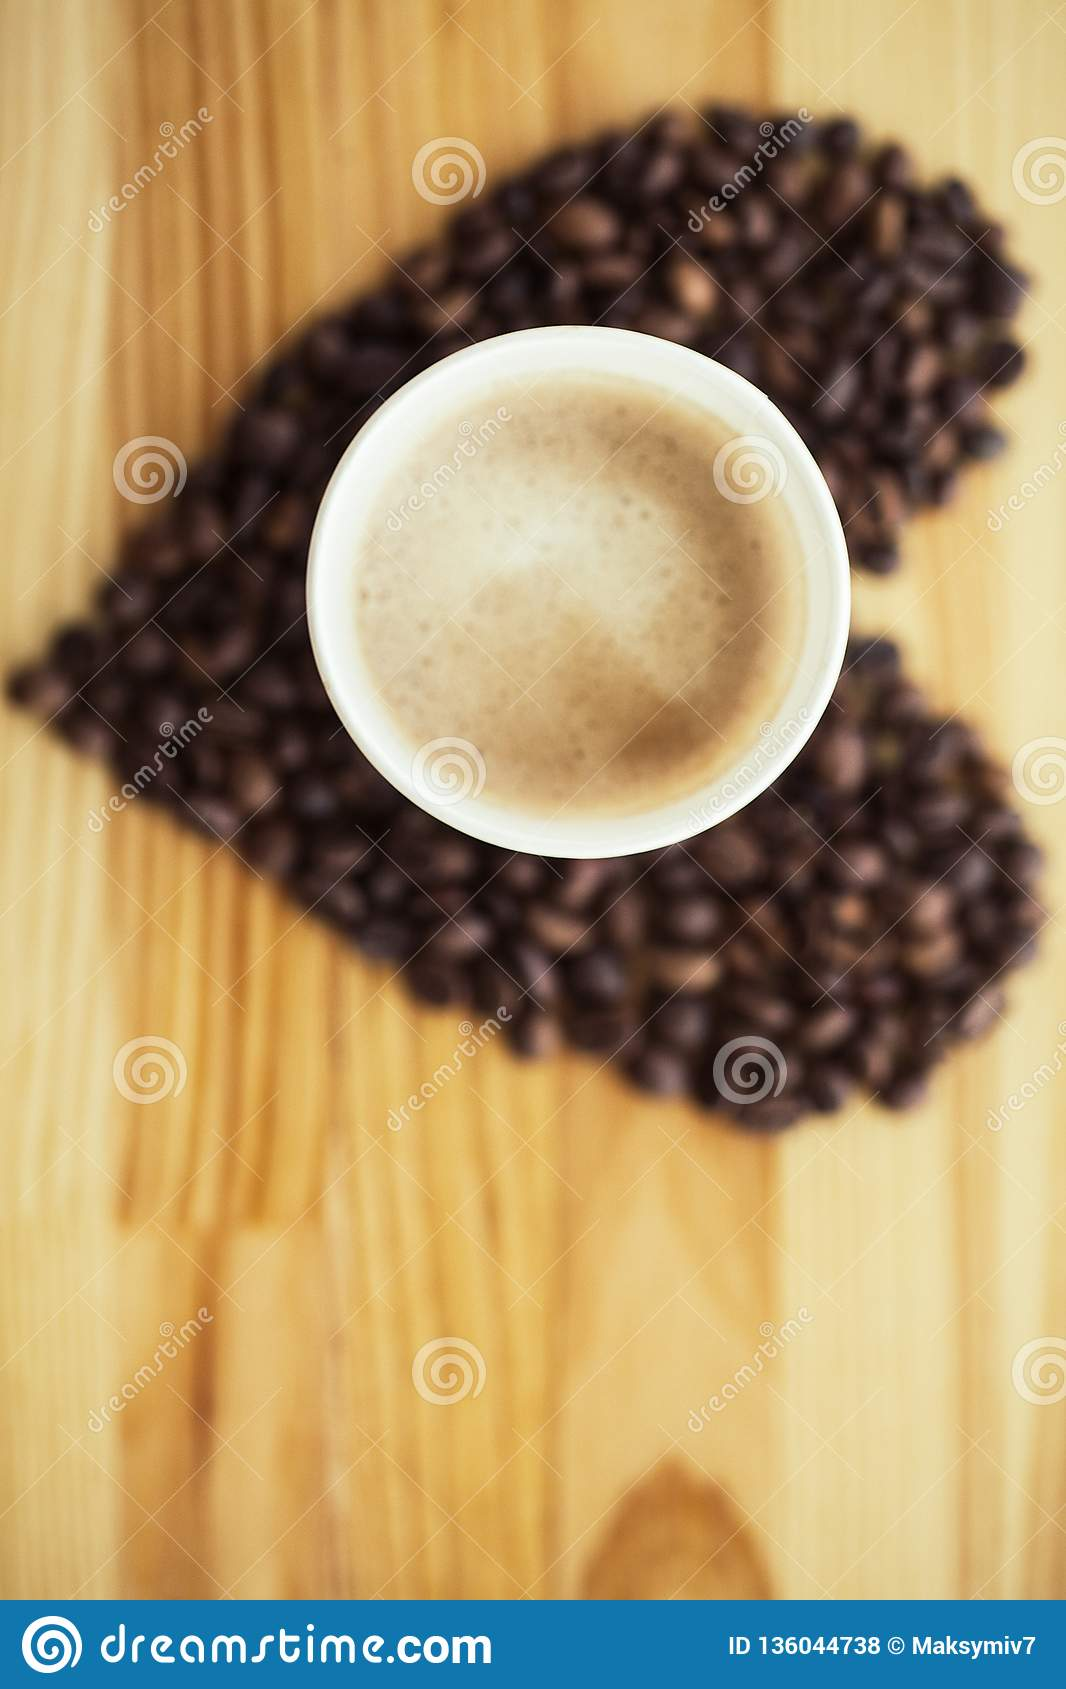 Good Morning Coffee Time Coffee To Go And Beans On A